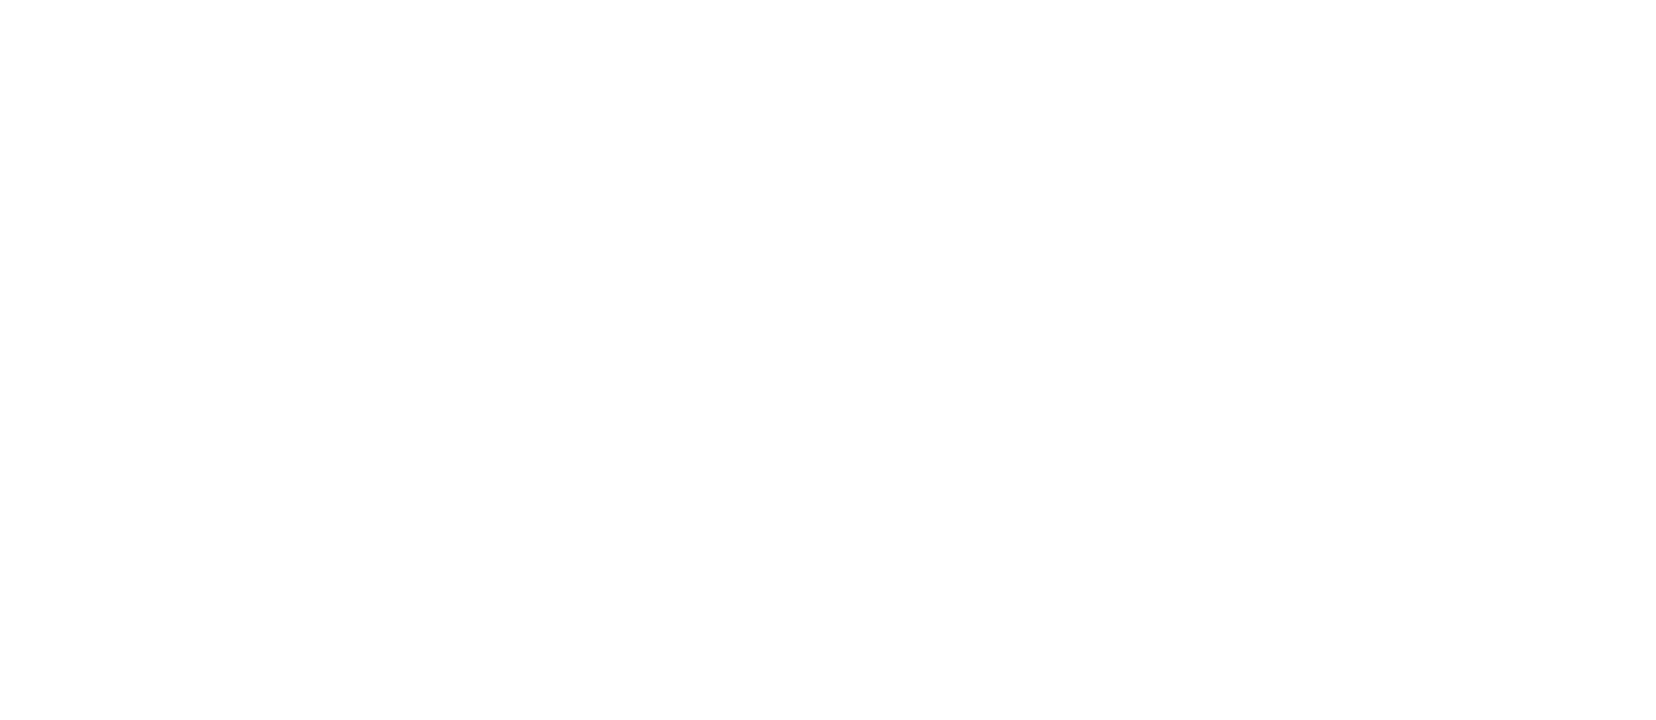 Organizations - UT Dallas Department of Computer Science - The